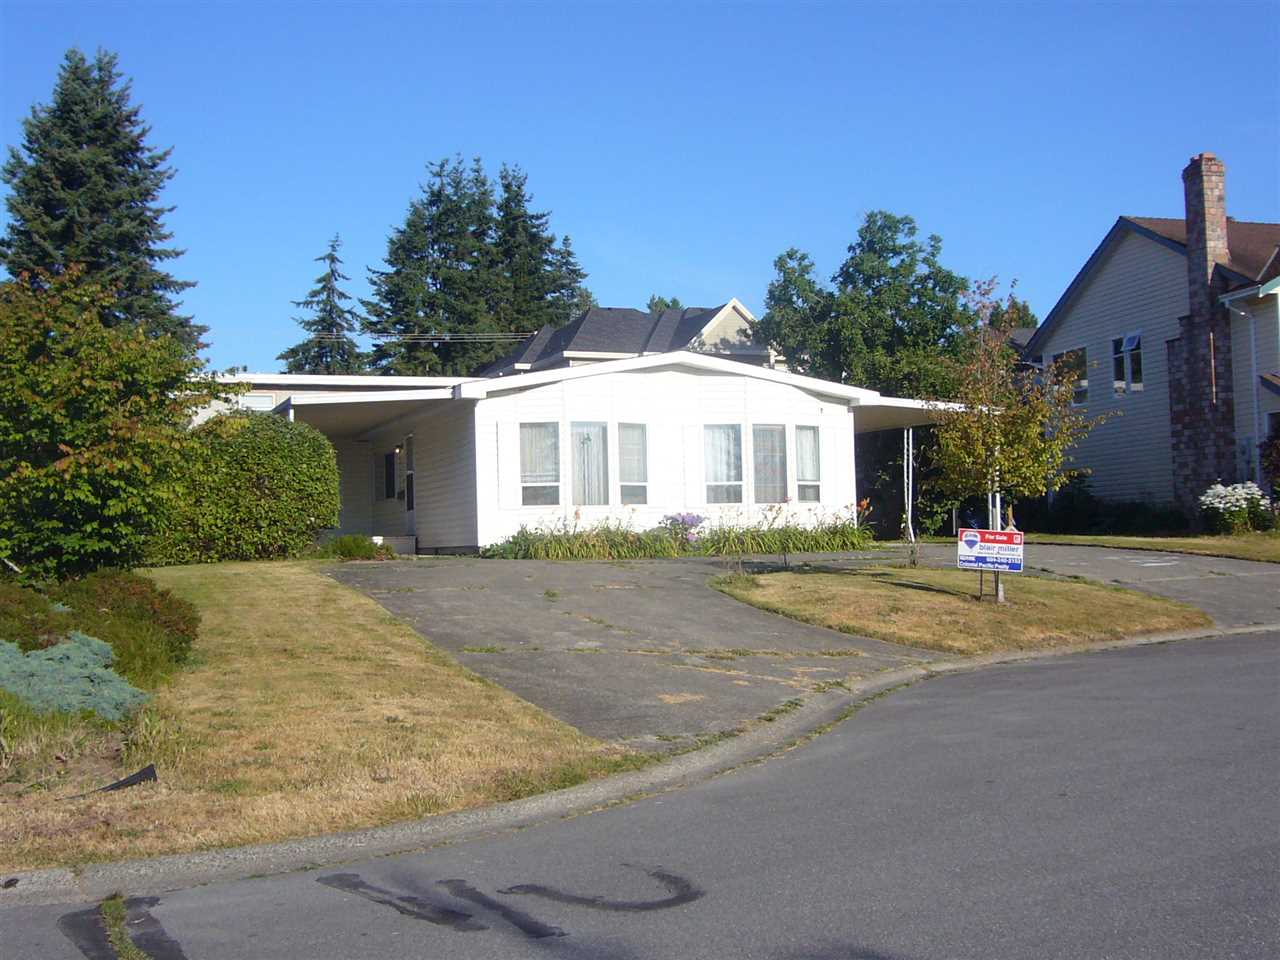 Detached at 1499 160A STREET, South Surrey White Rock, British Columbia. Image 1